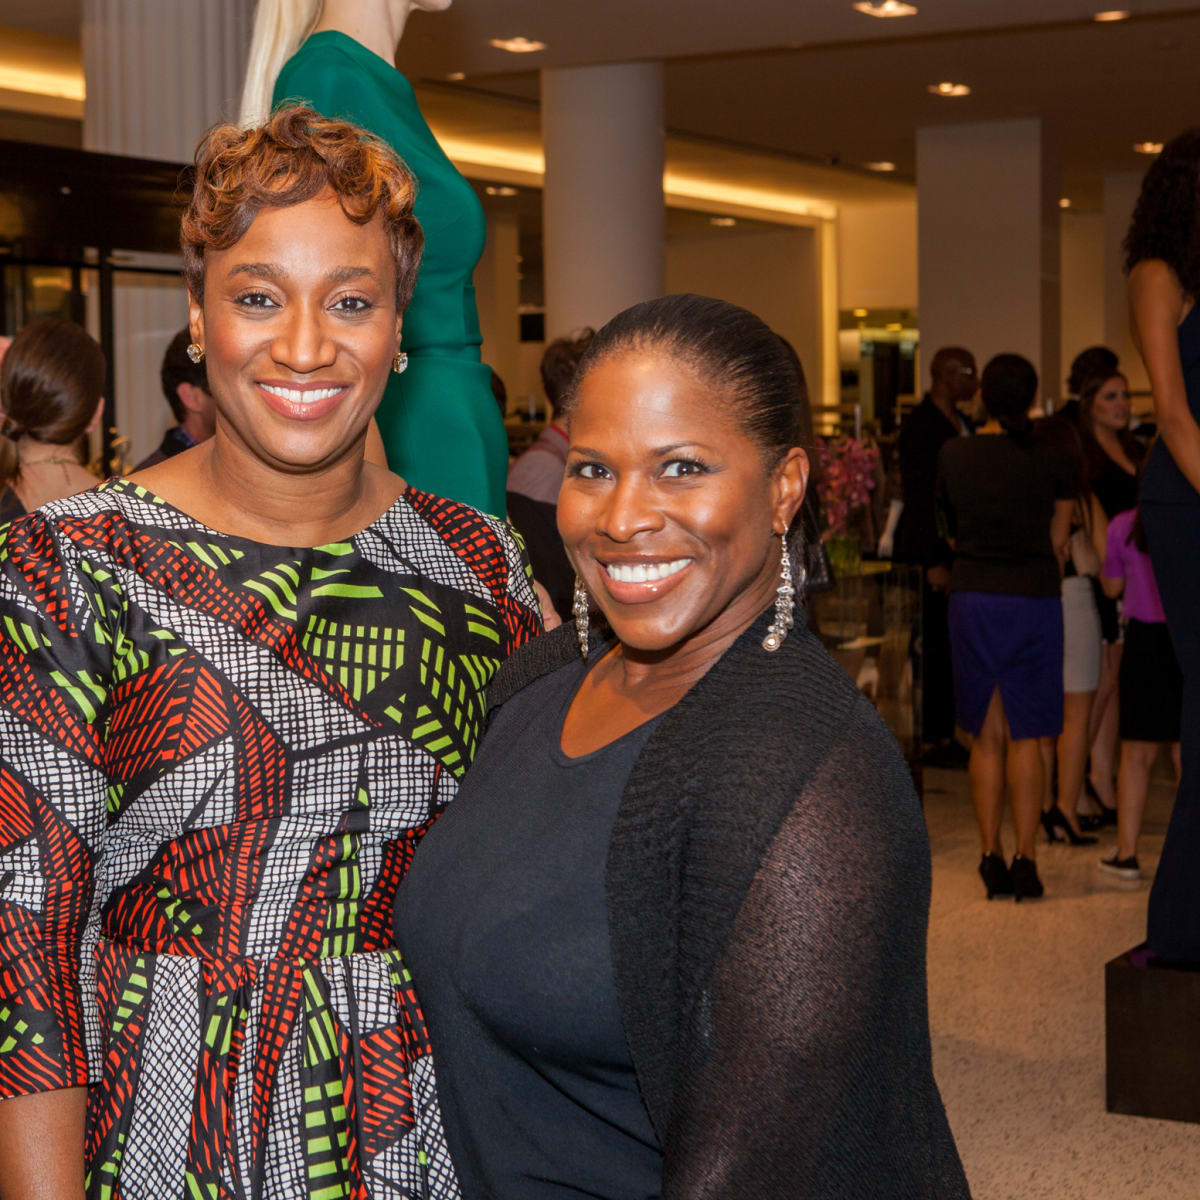 Andrea Bonner, Shandolyn Arline-Johnson at Heart of Fashion kickoff party